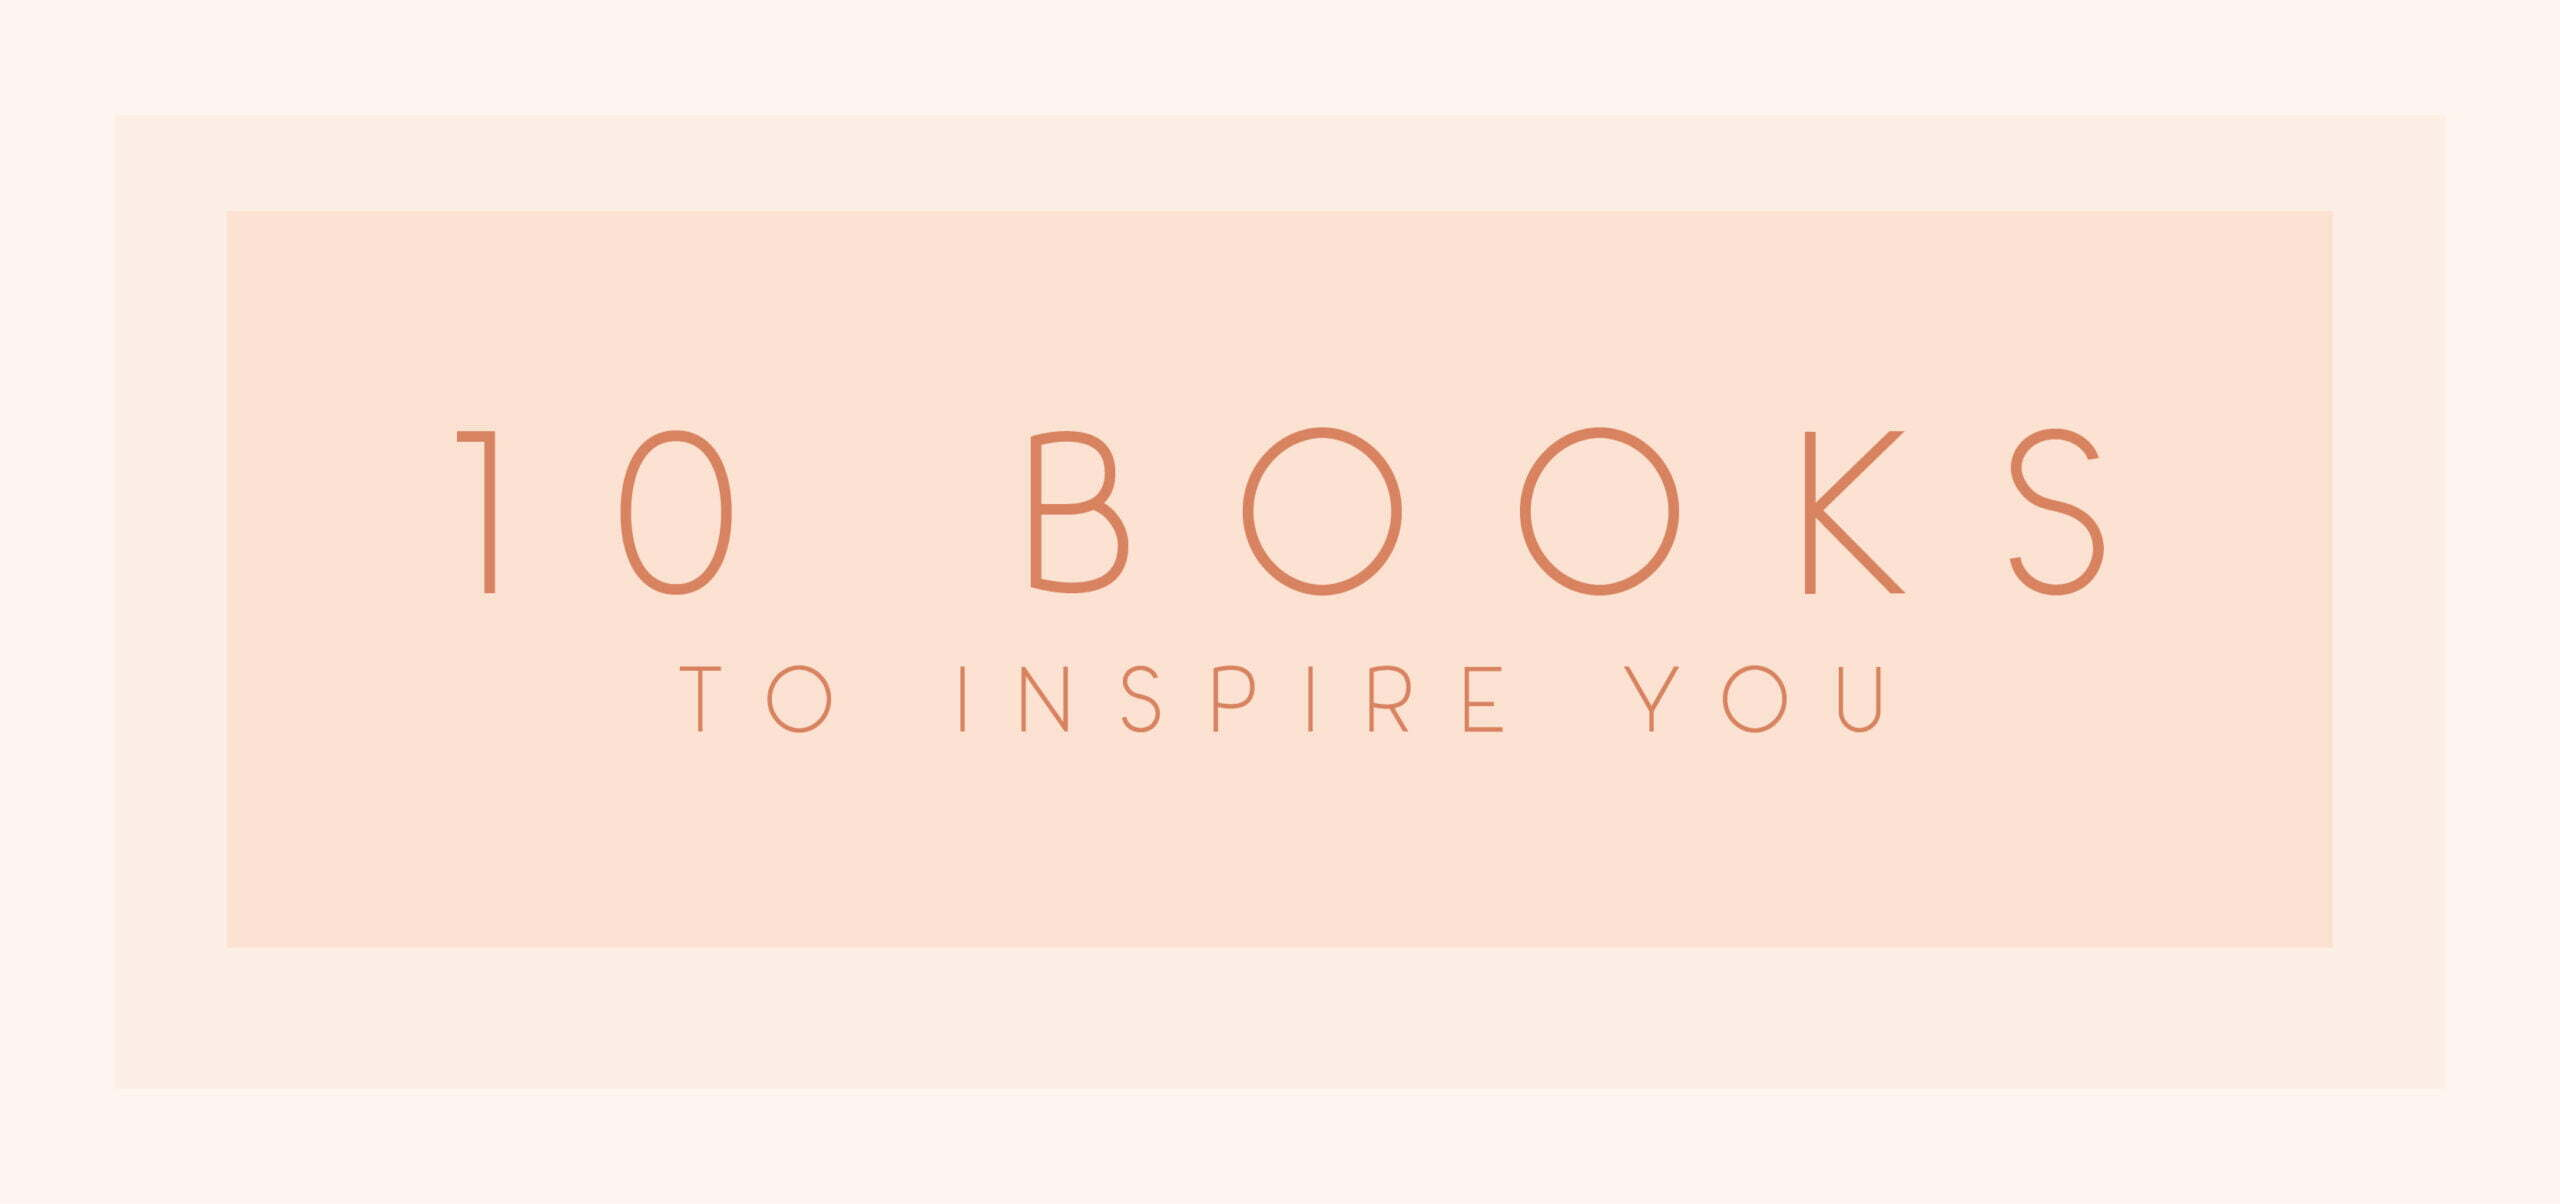 10 Books To Inspire You